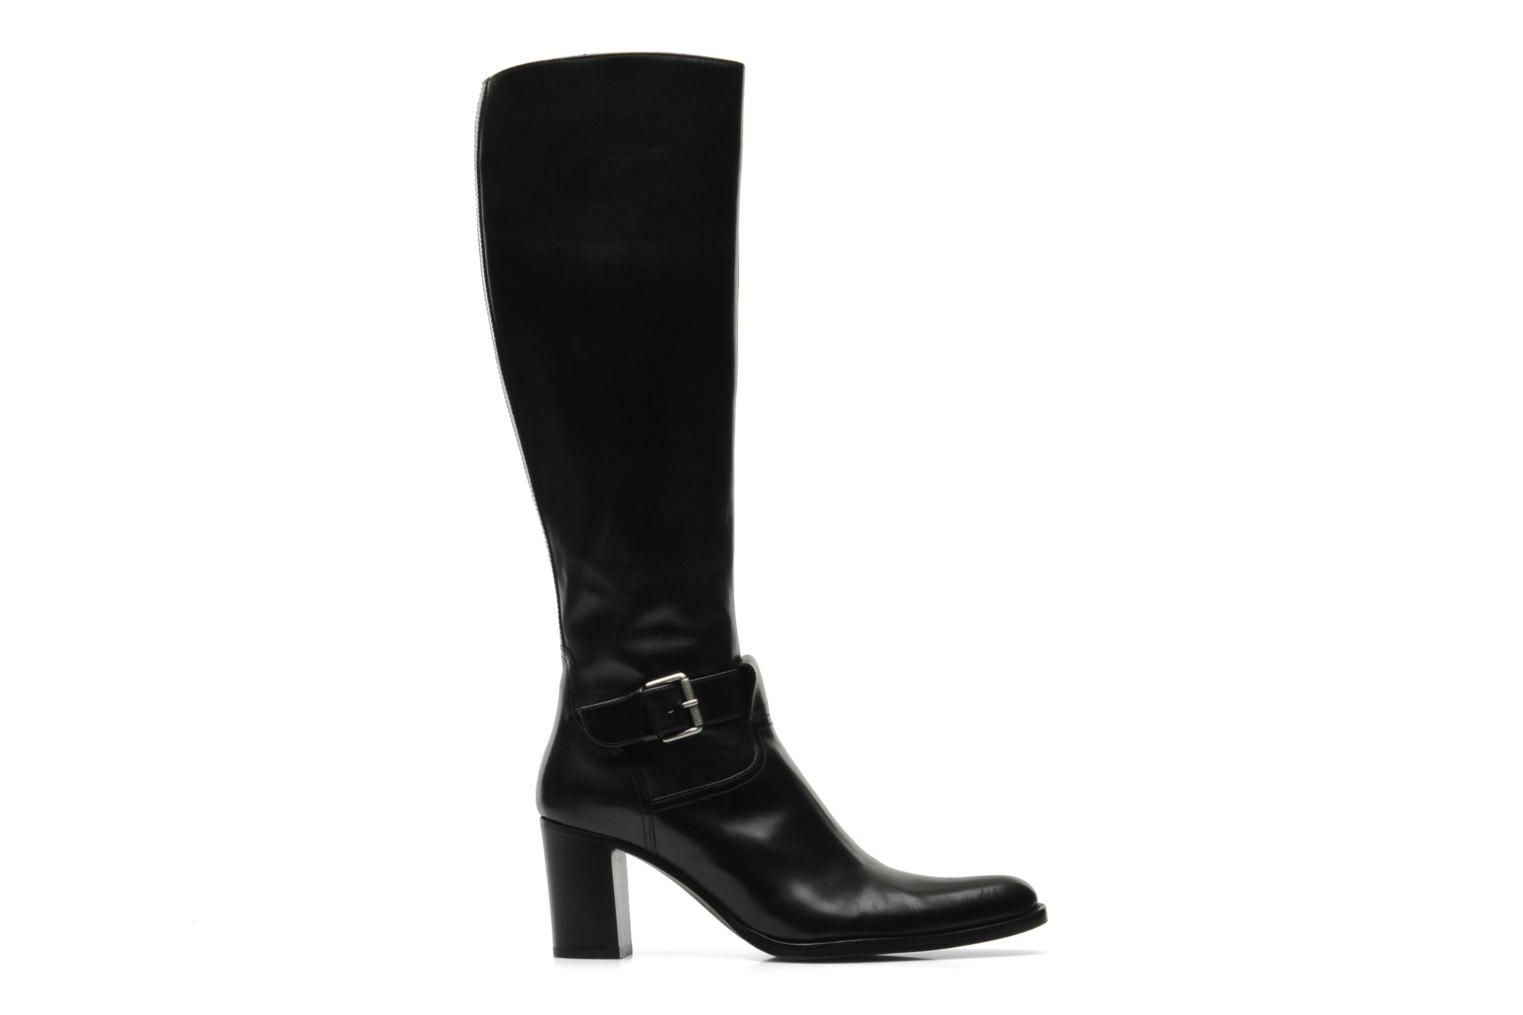 Queenie 7Botte Parma noir